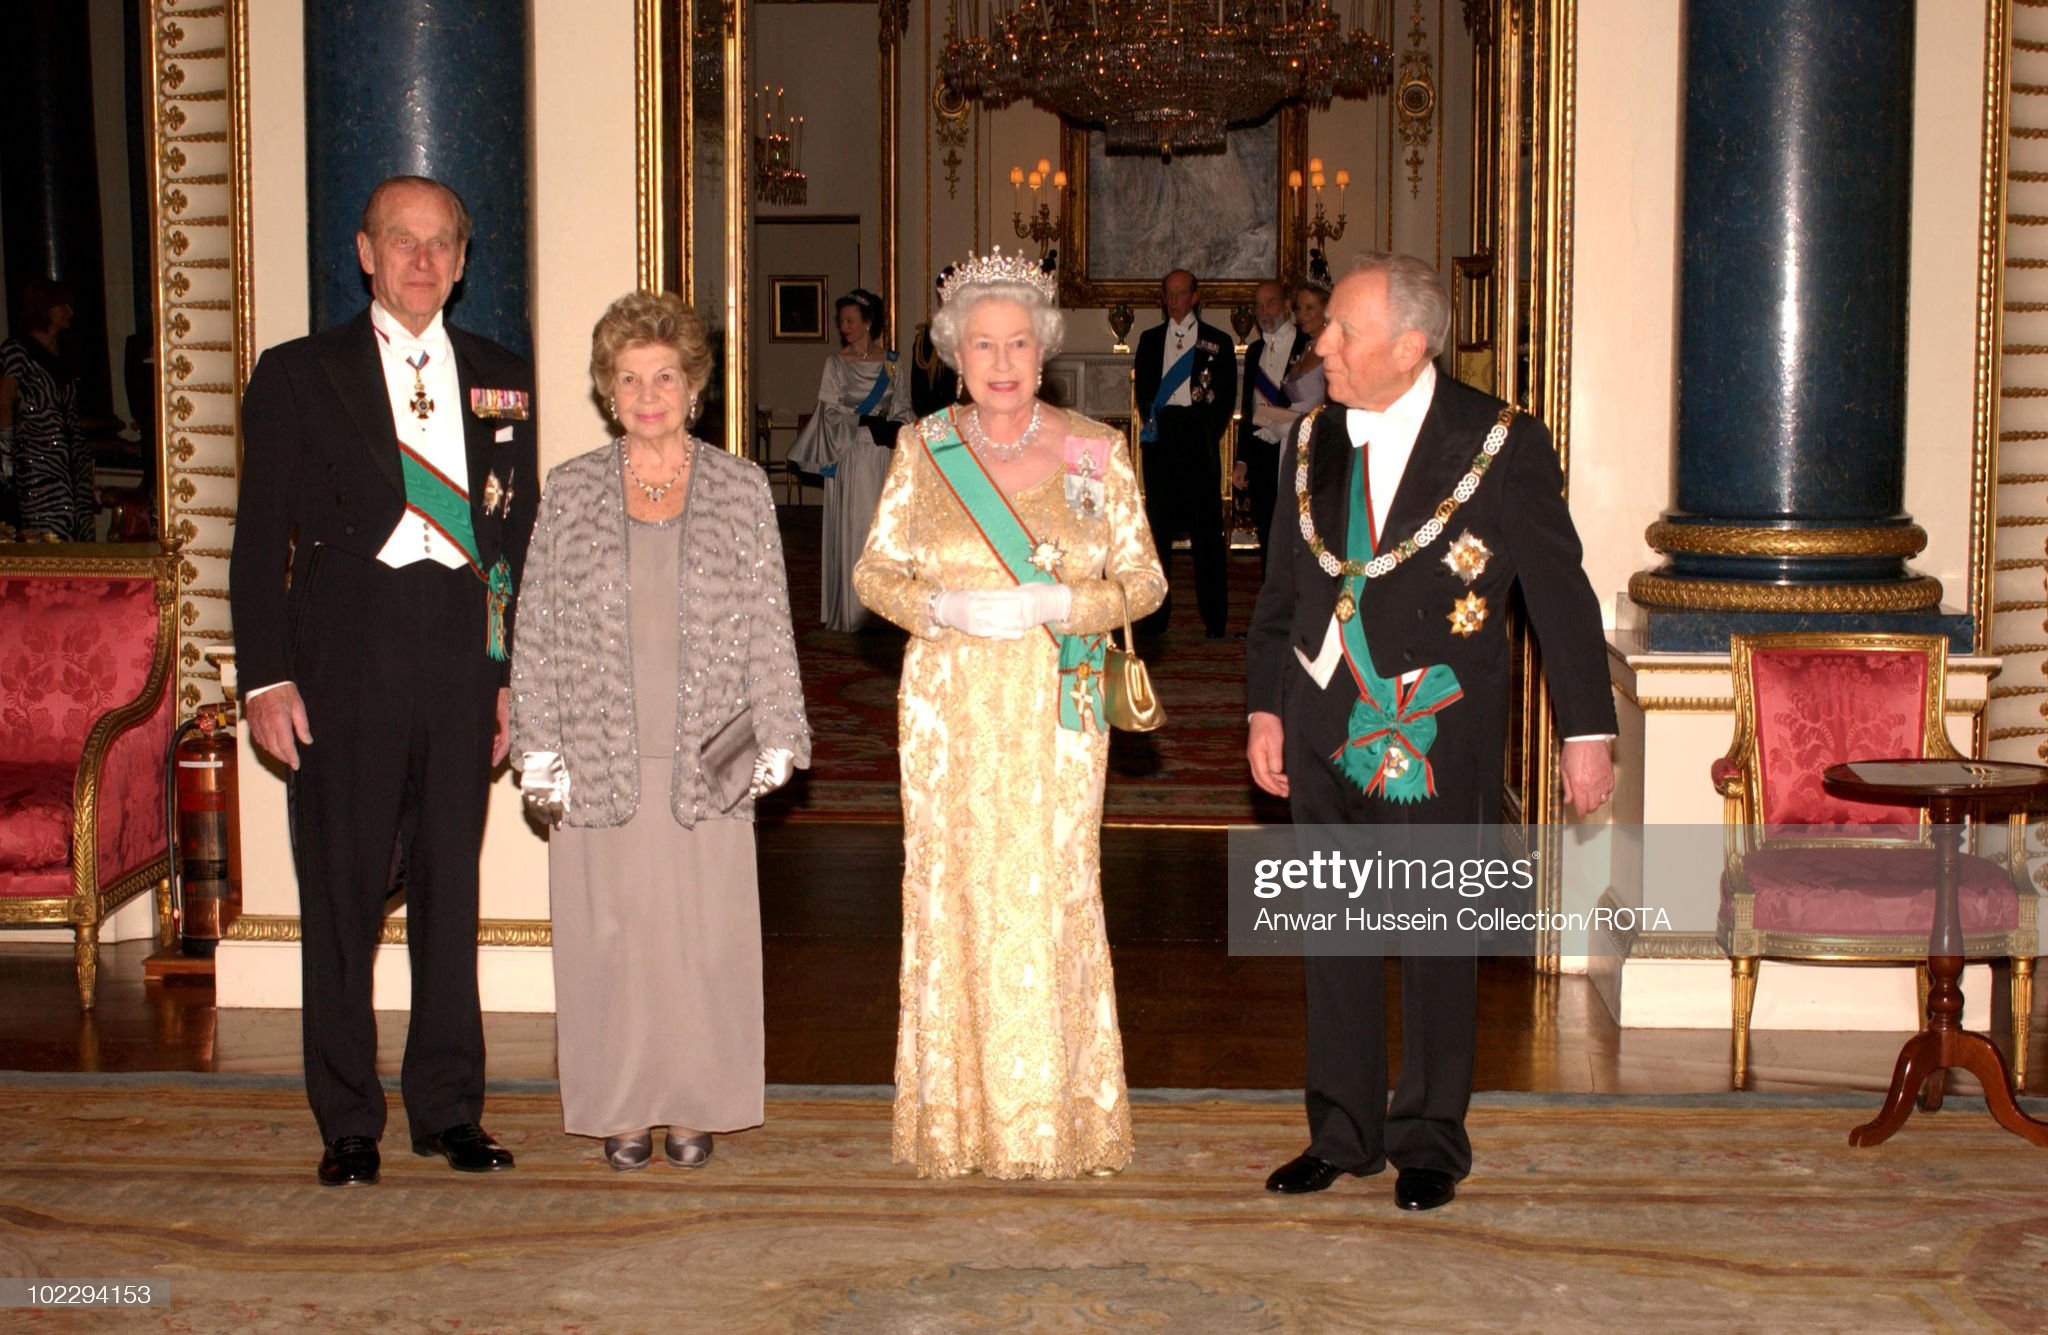 HRH Queen Elizabeth II Welcomes Italian President With A State Banquet : News Photo